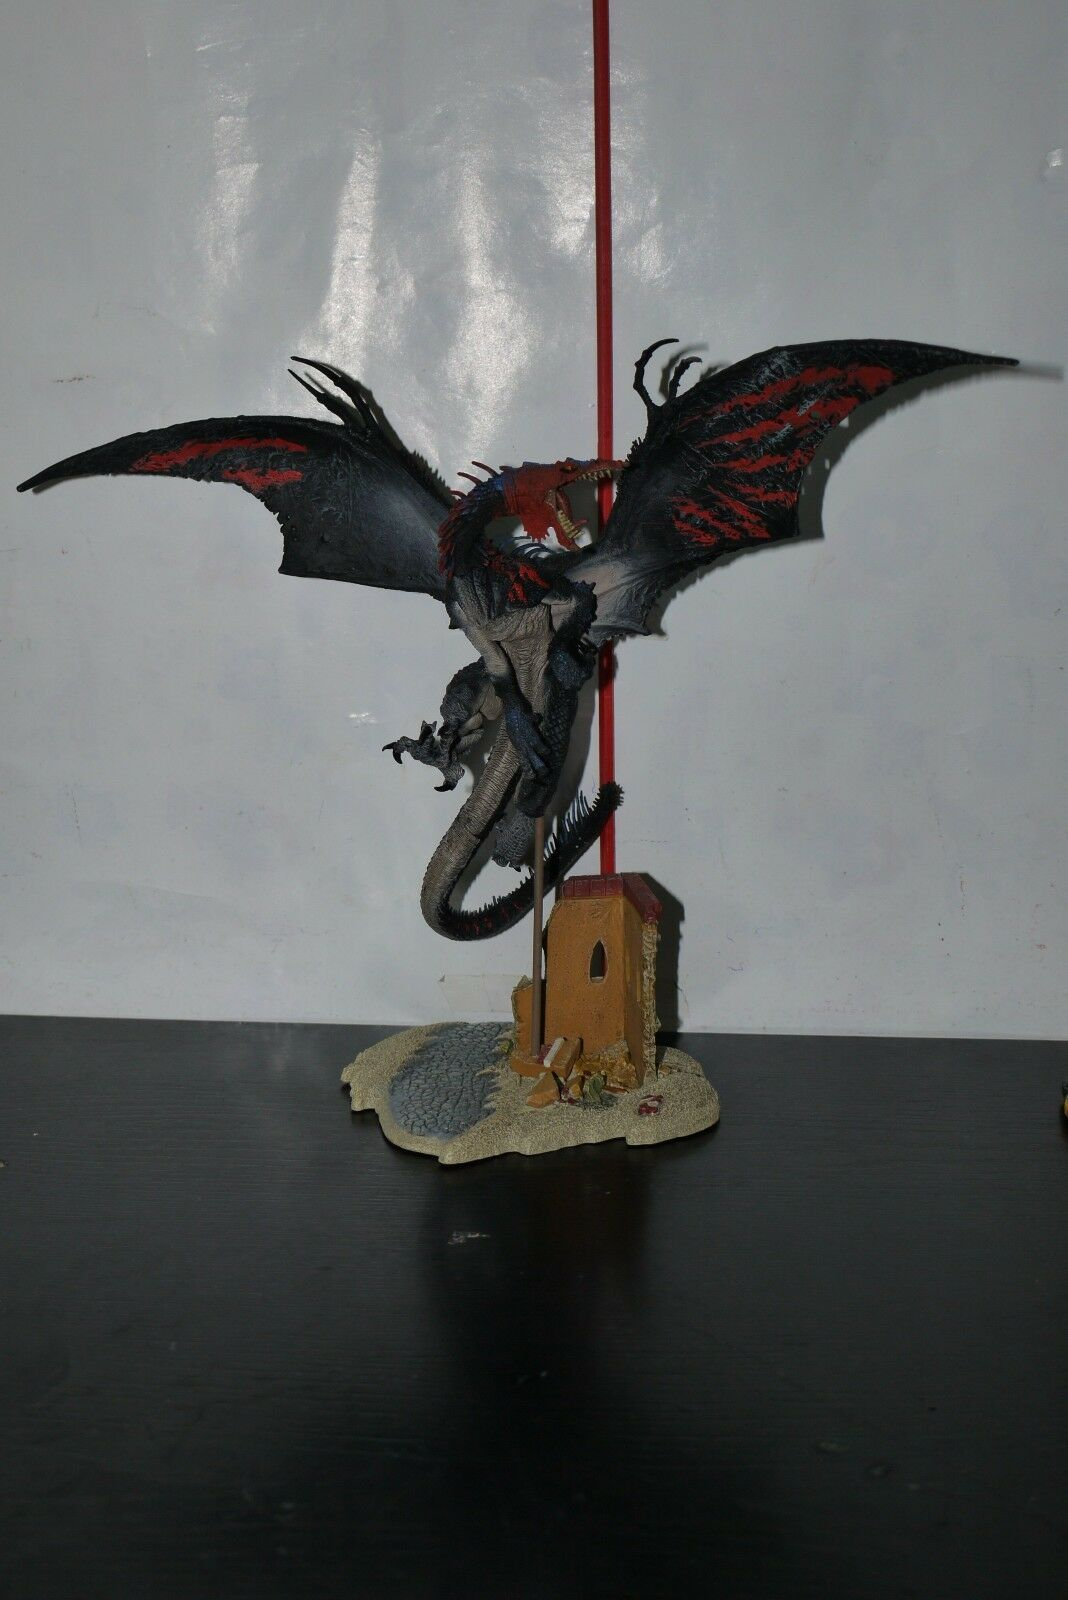 McFARLANE SCAVENGER DRAGON FALL FALL FALL OF THE KINGDOM Series 6 FIGURE STATUE DIORAMA 7cc8f4